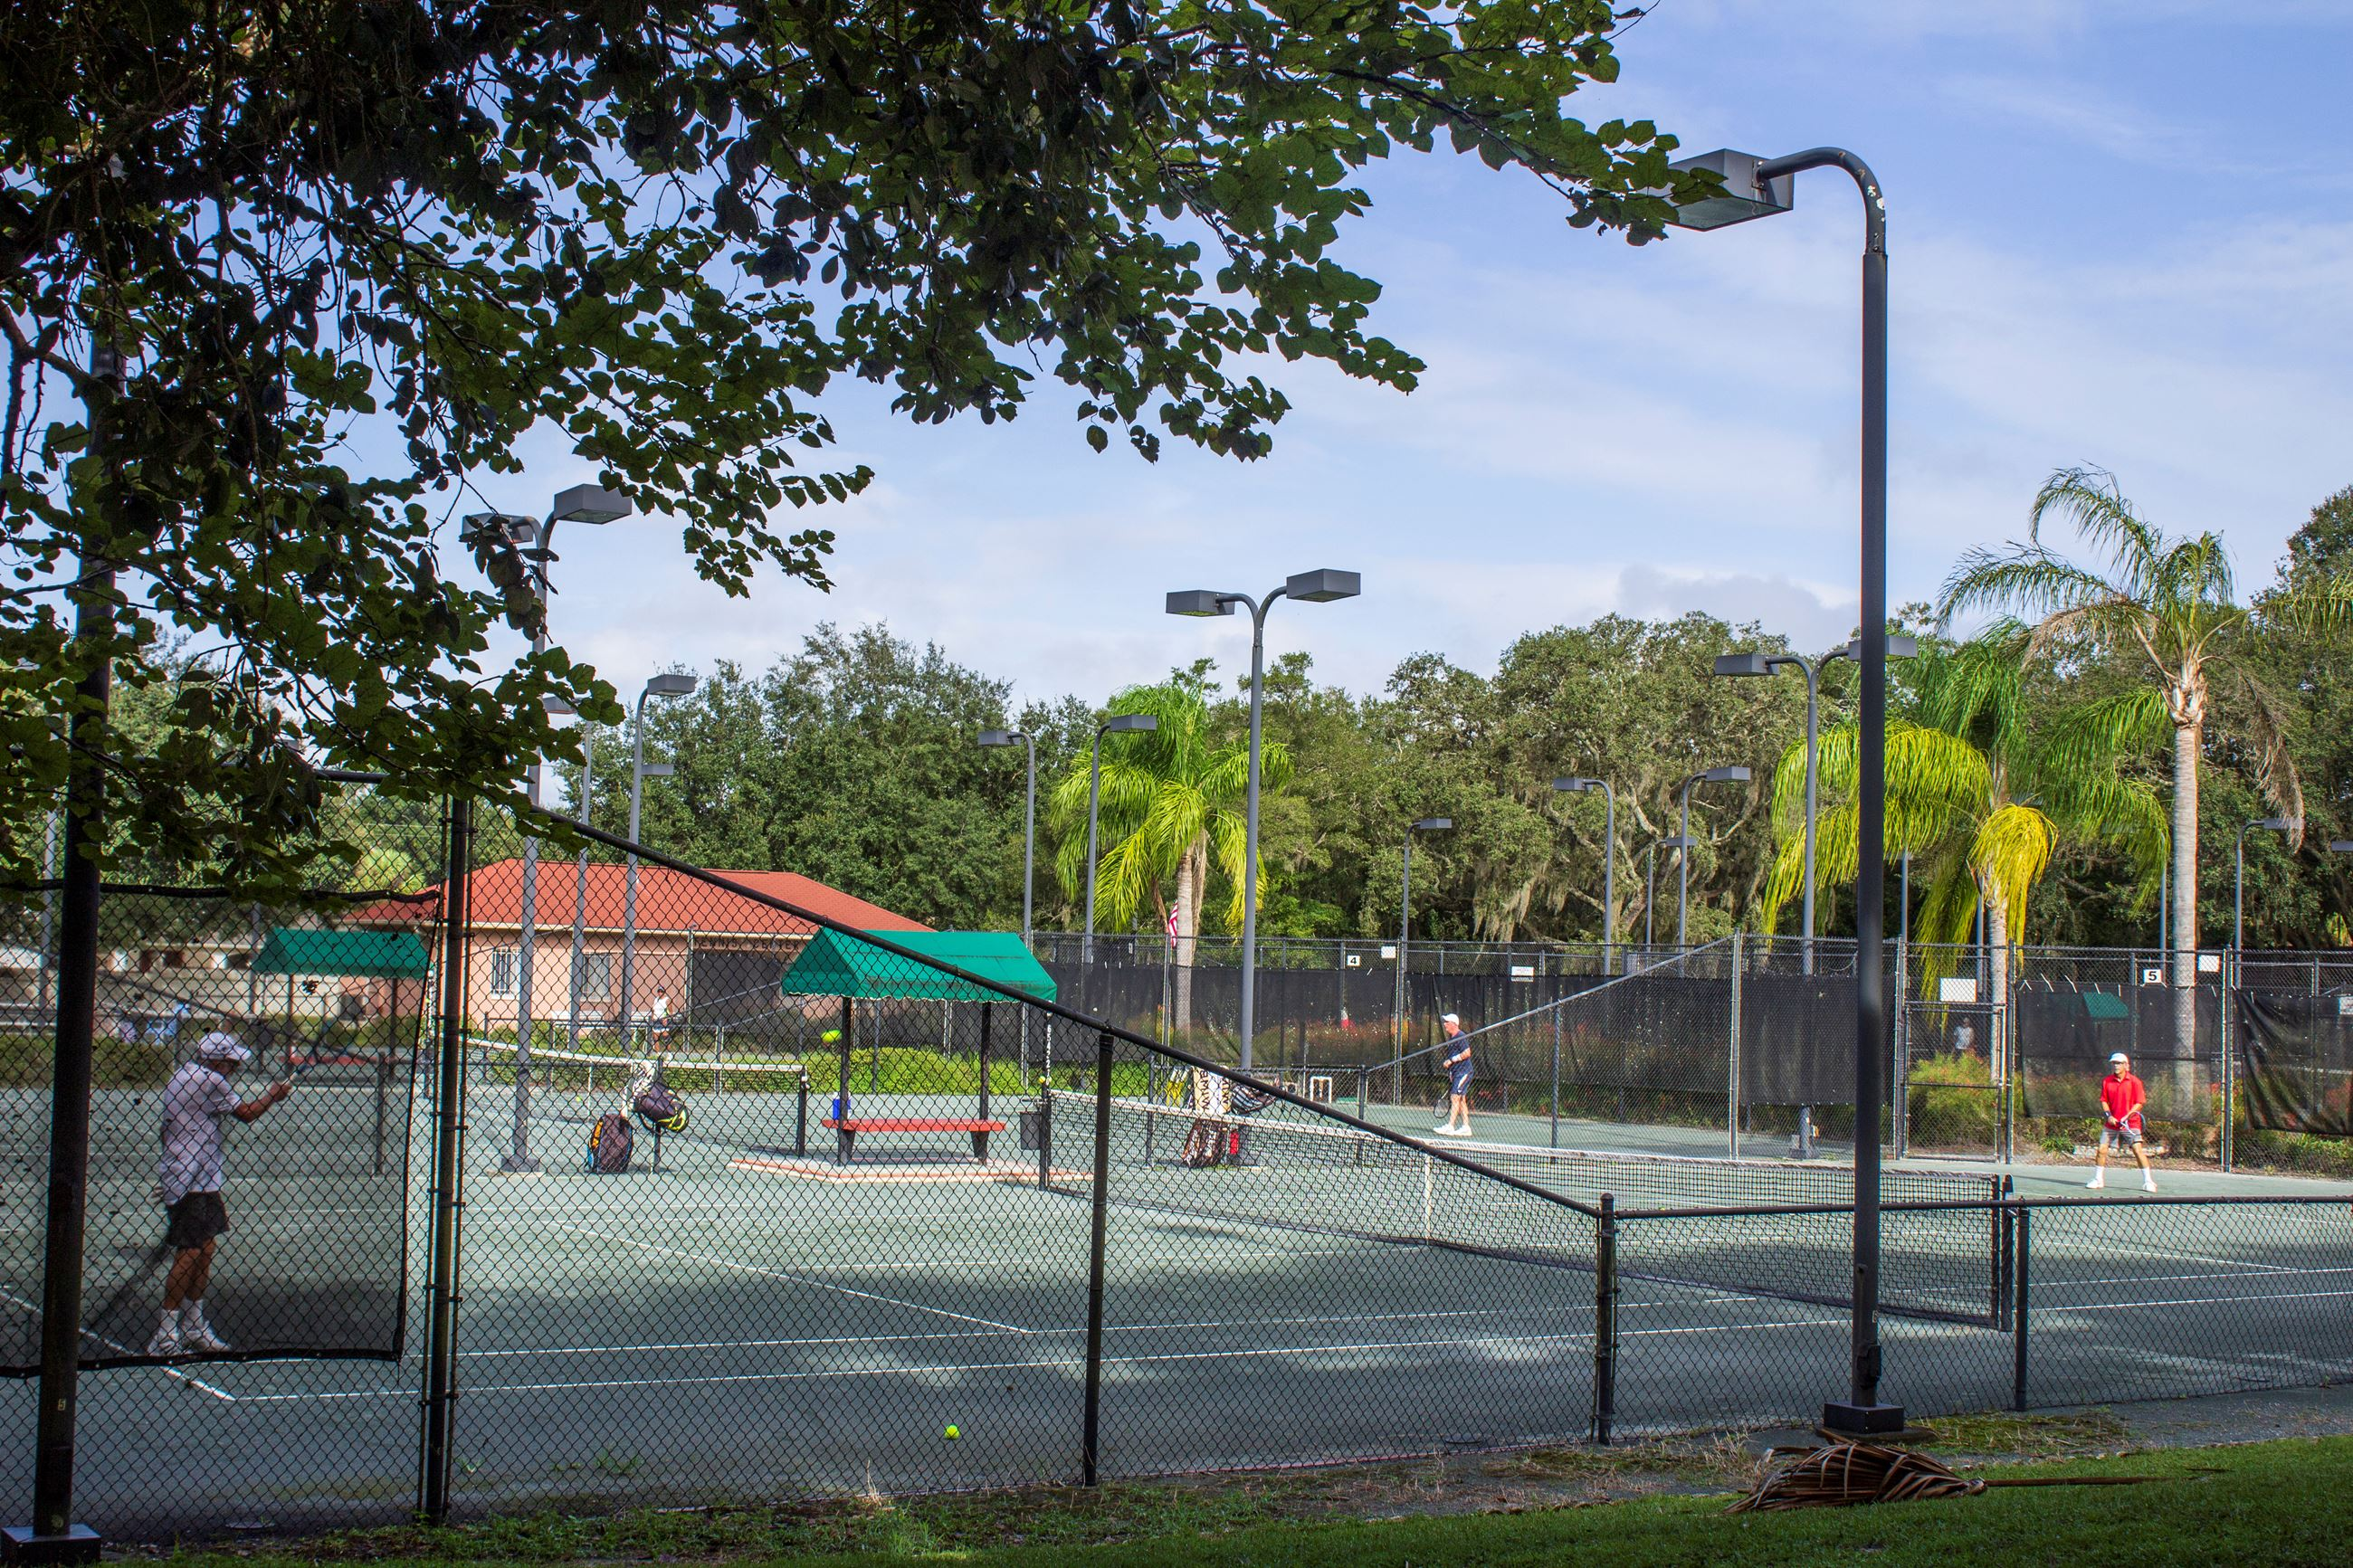 Tennis courts at the Family Rec Complex